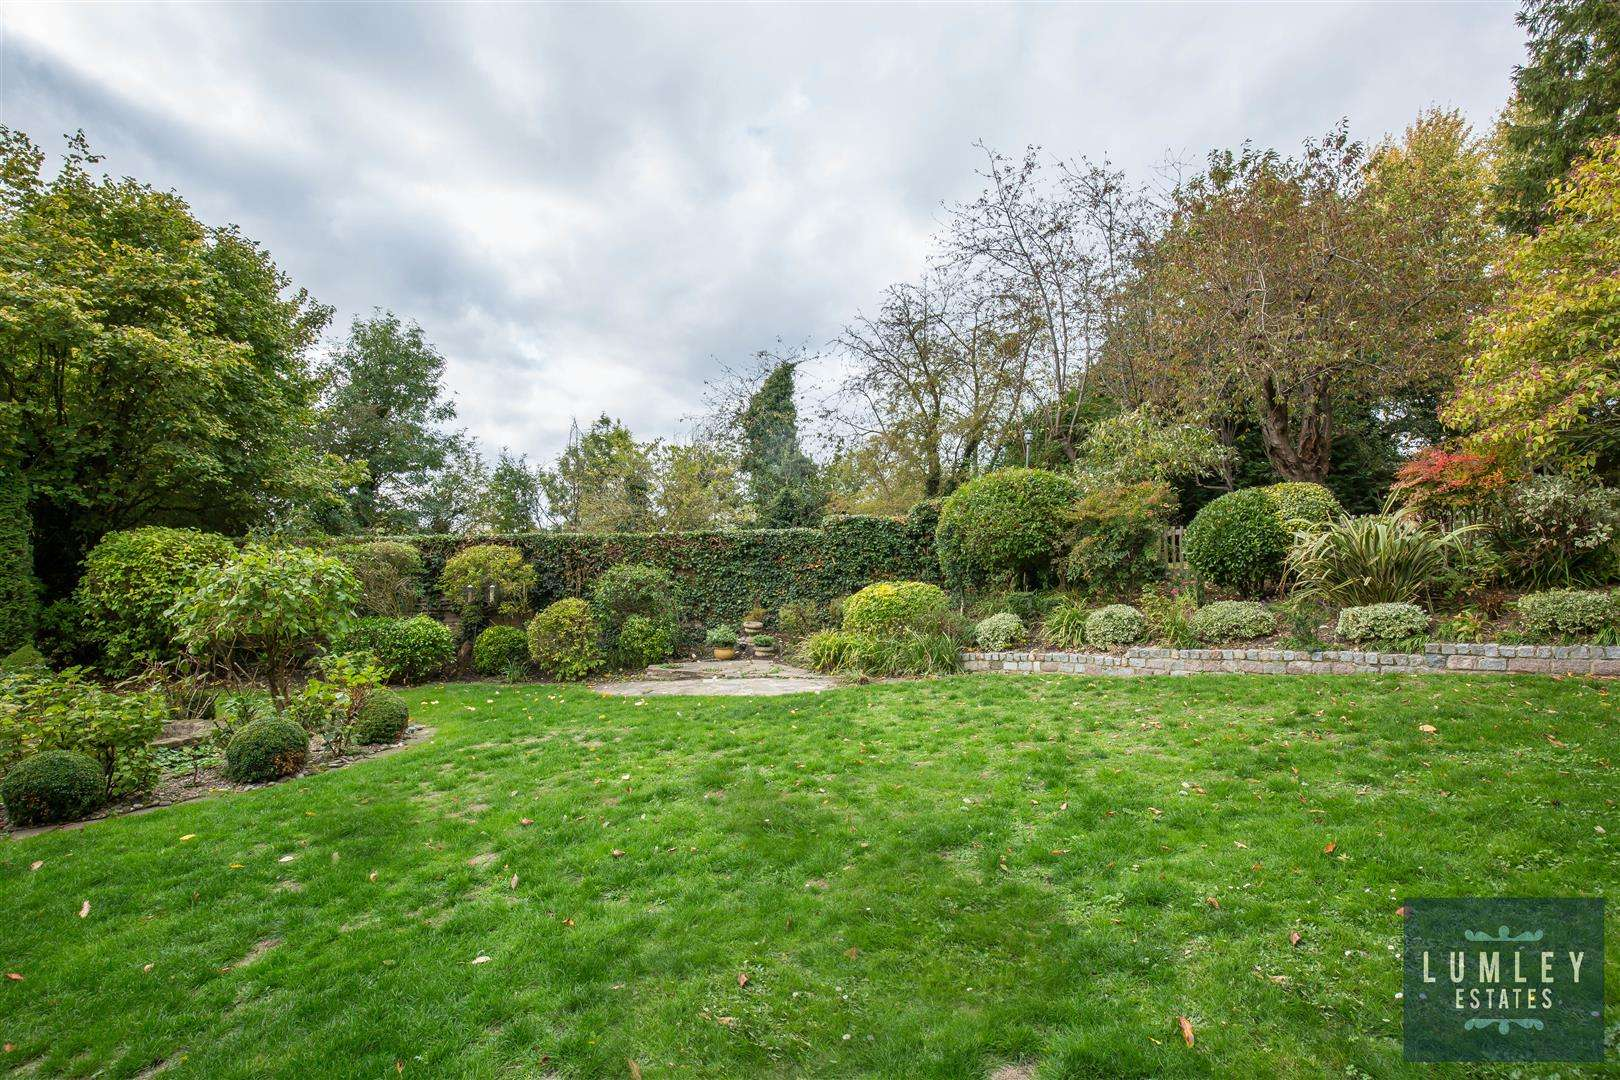 4 bed for sale in Park Street - (Property Image 10)